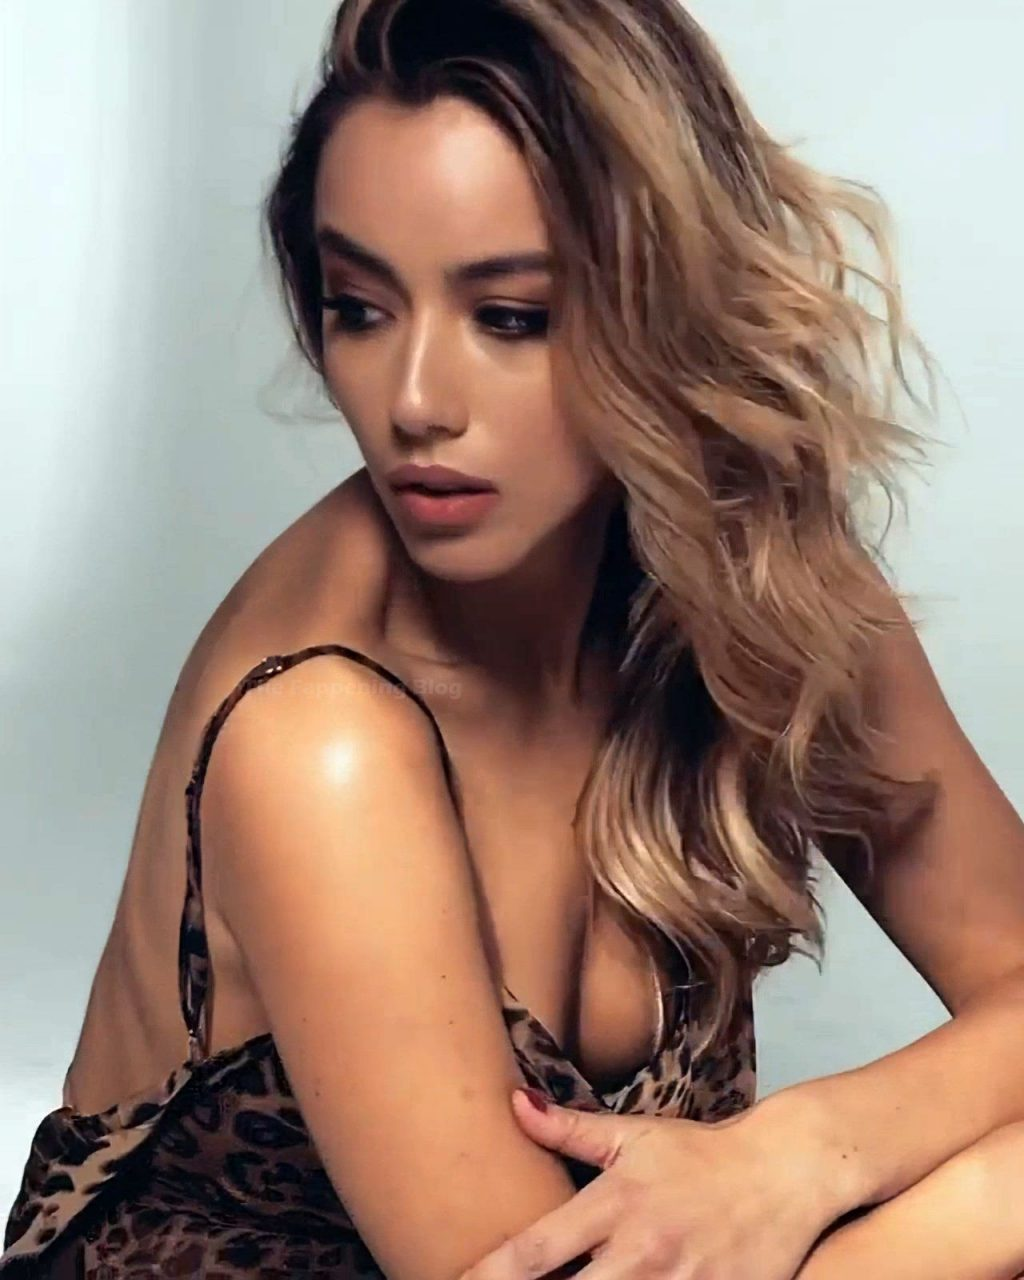 Chloe Bennet Shows Off Her Nude Breasts (12 Pics + Video)